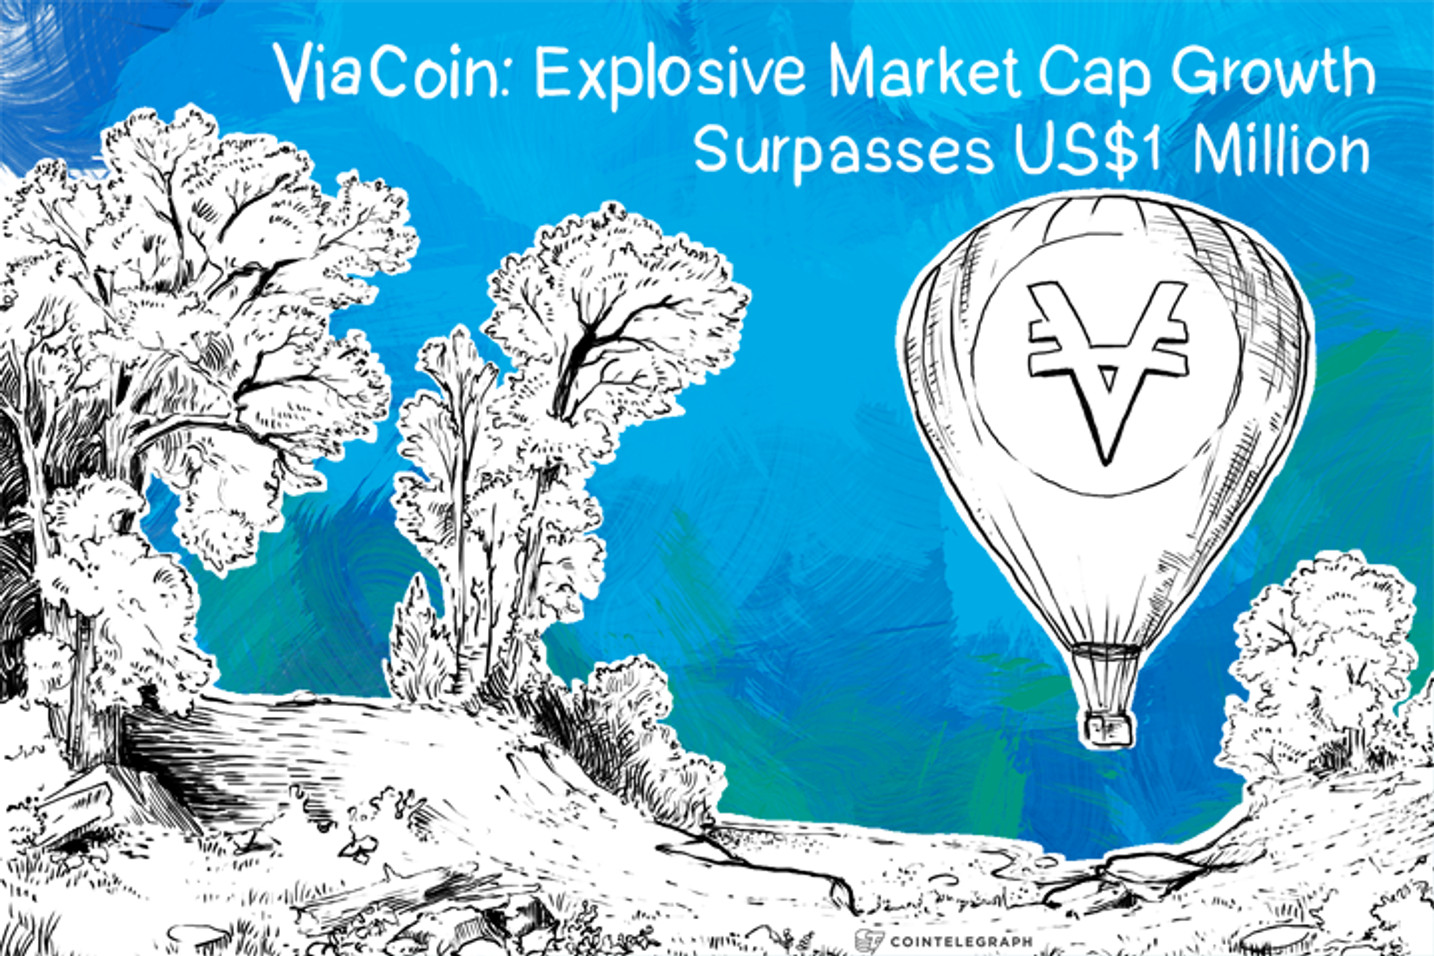 ViaCoin: Explosive Market Cap Growth Surpasses US$1 Million